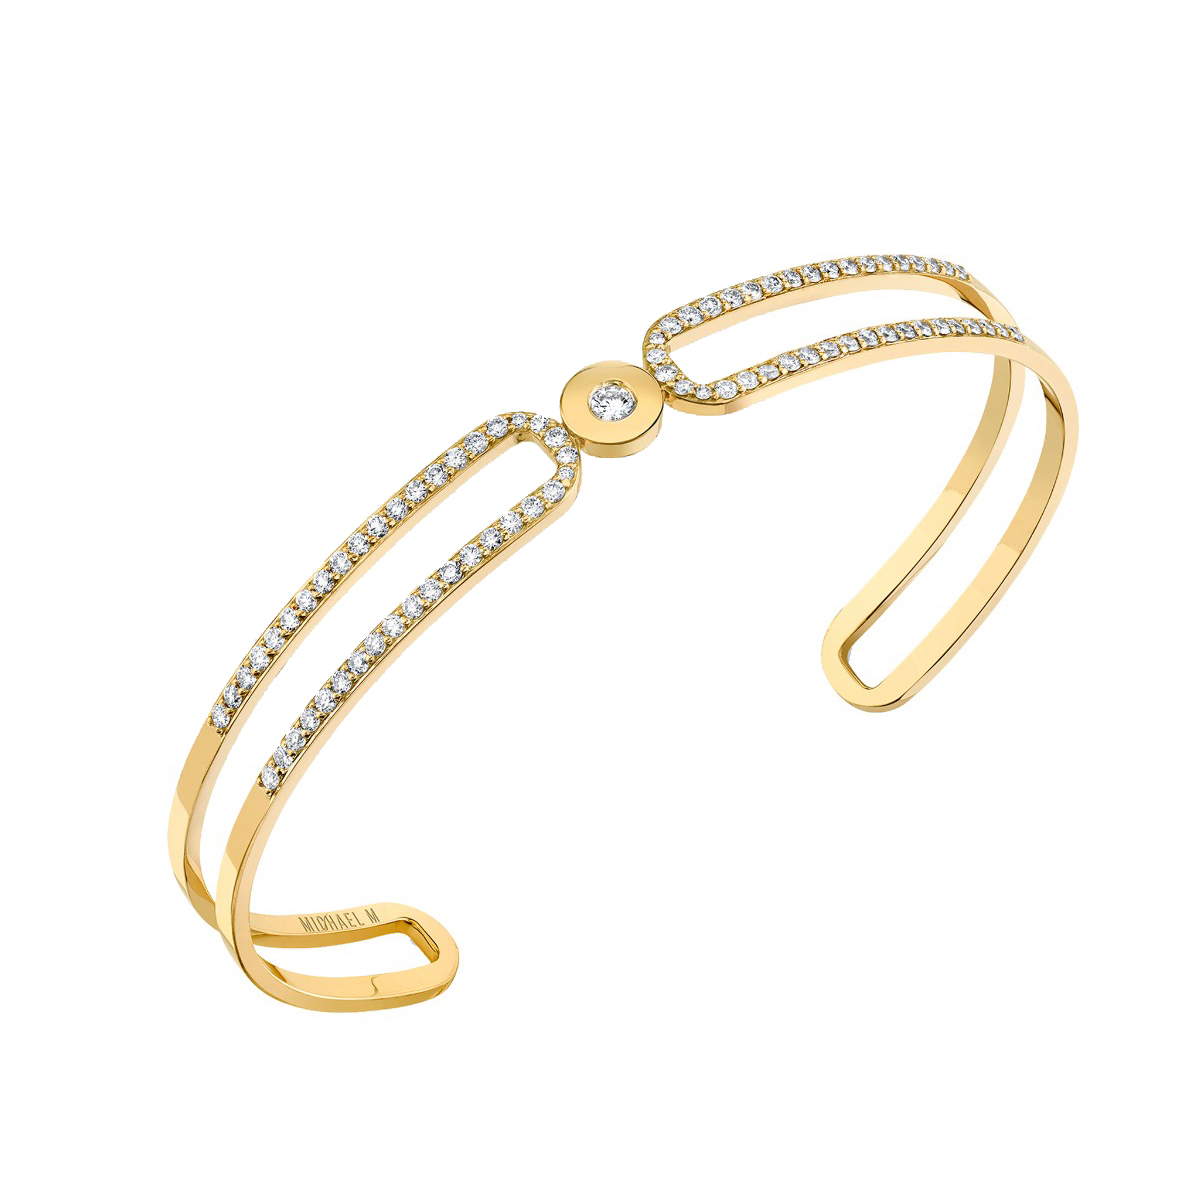 Michael M Fashion Jewelry Collections